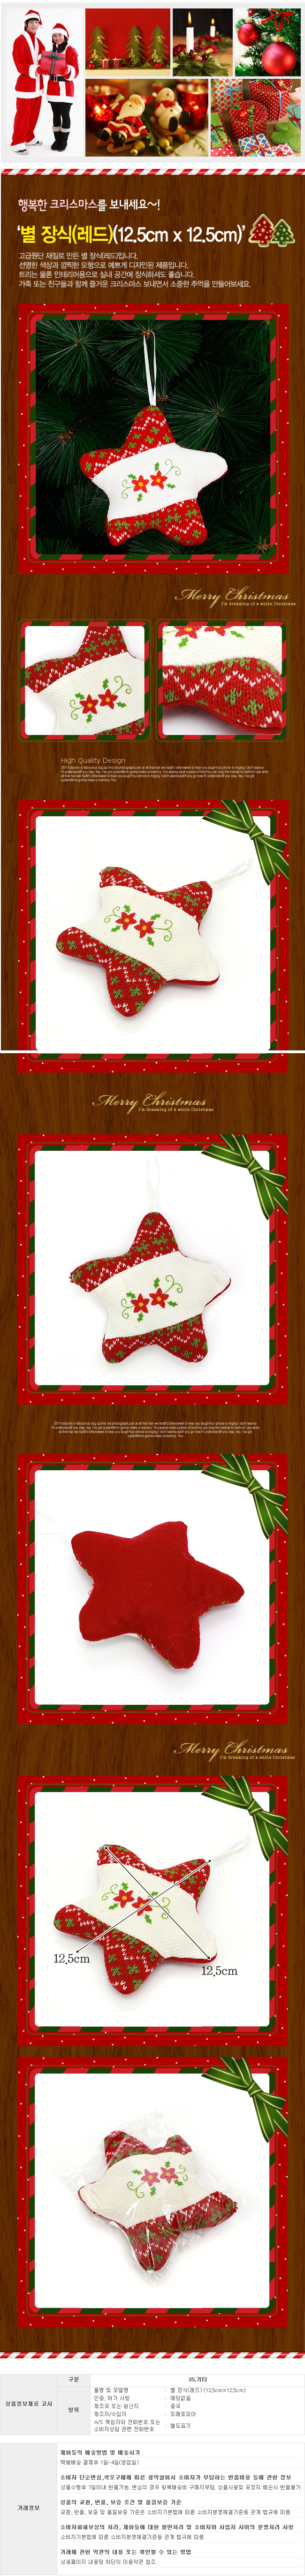 [ WINEQOK ] Christmas Goods / Red velvet with stars .×.